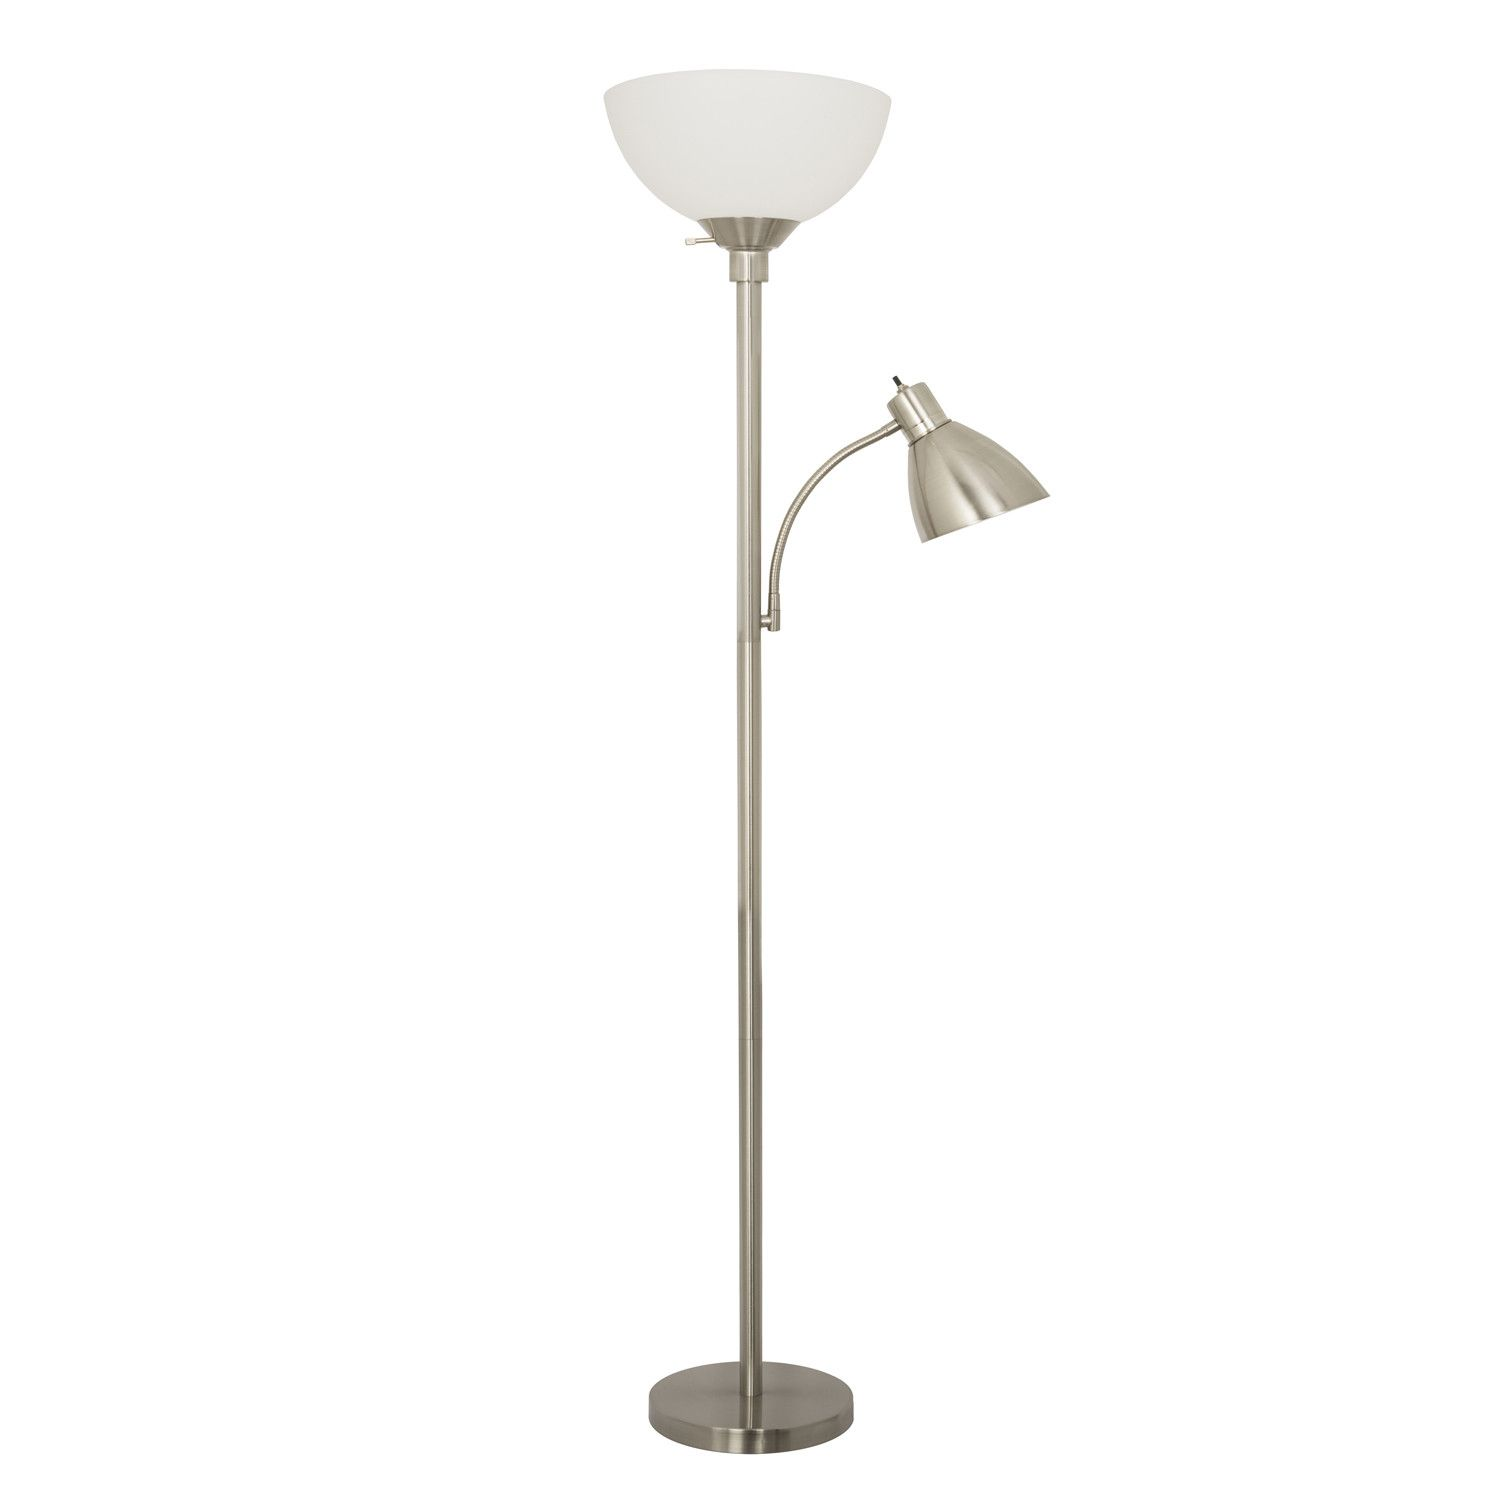 Home Design 150 Watt Floor Lamp With Side Reading Light Satin Nickel